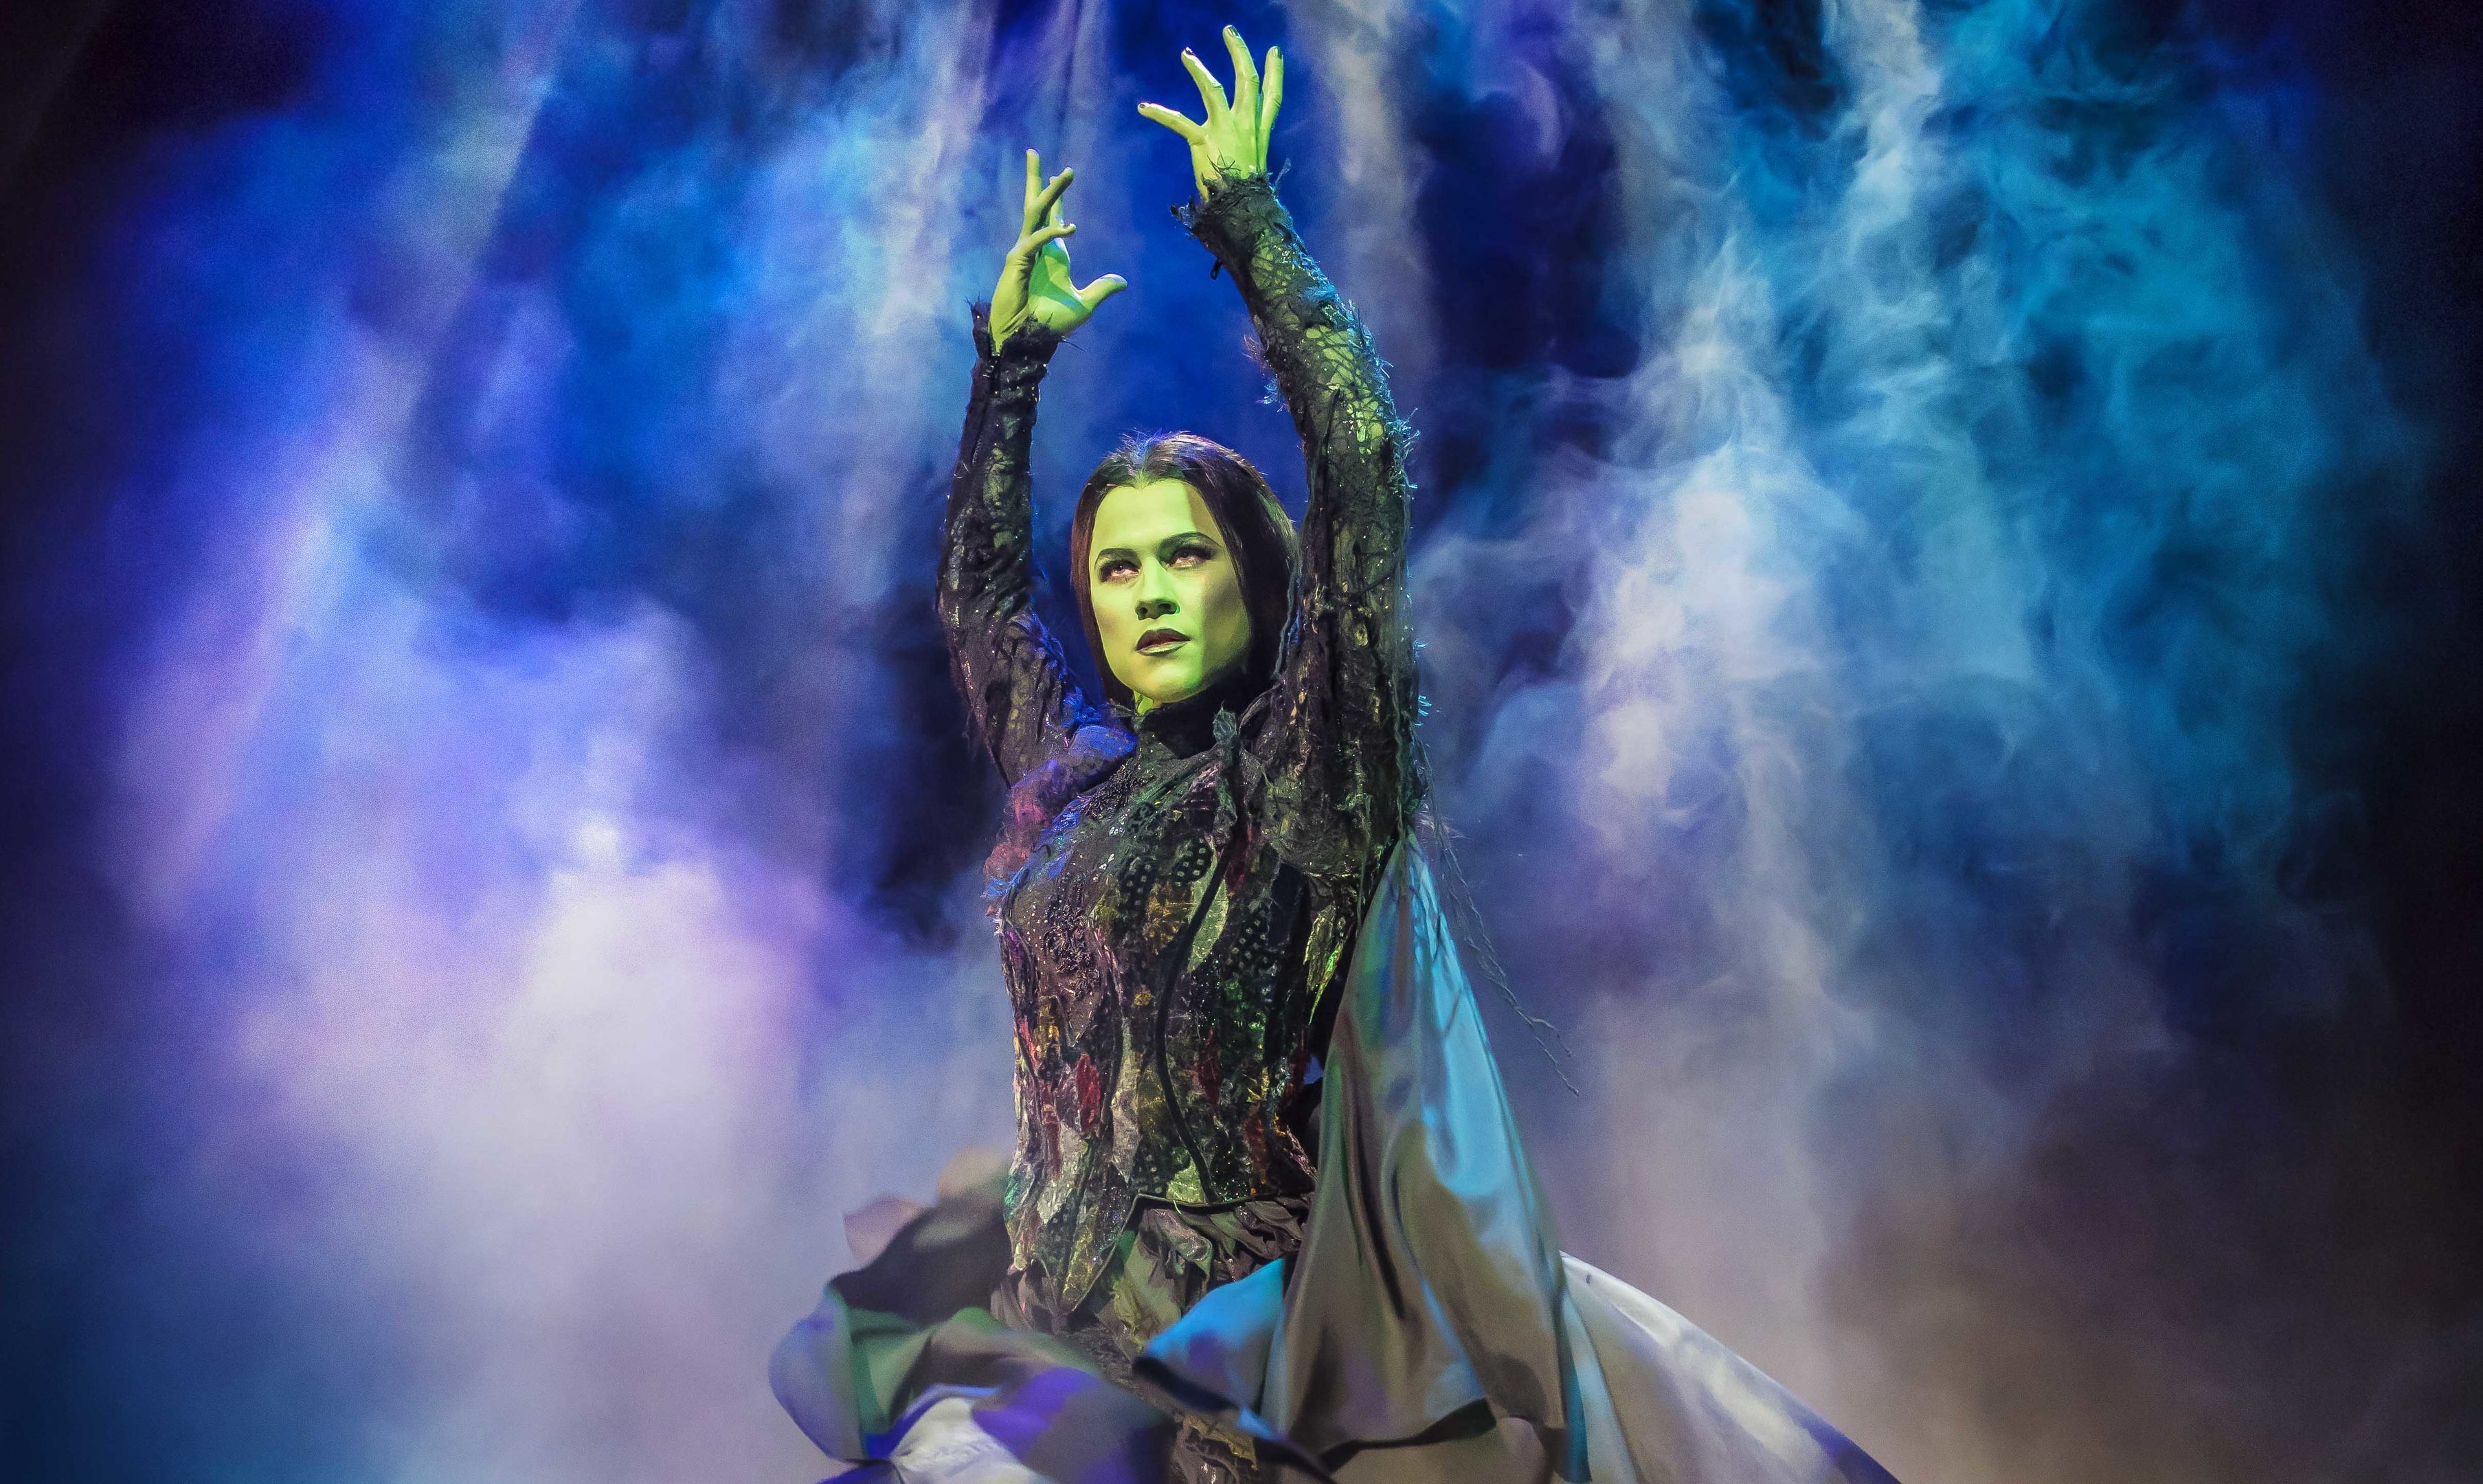 Amy Ross as Elphaba in Wicked